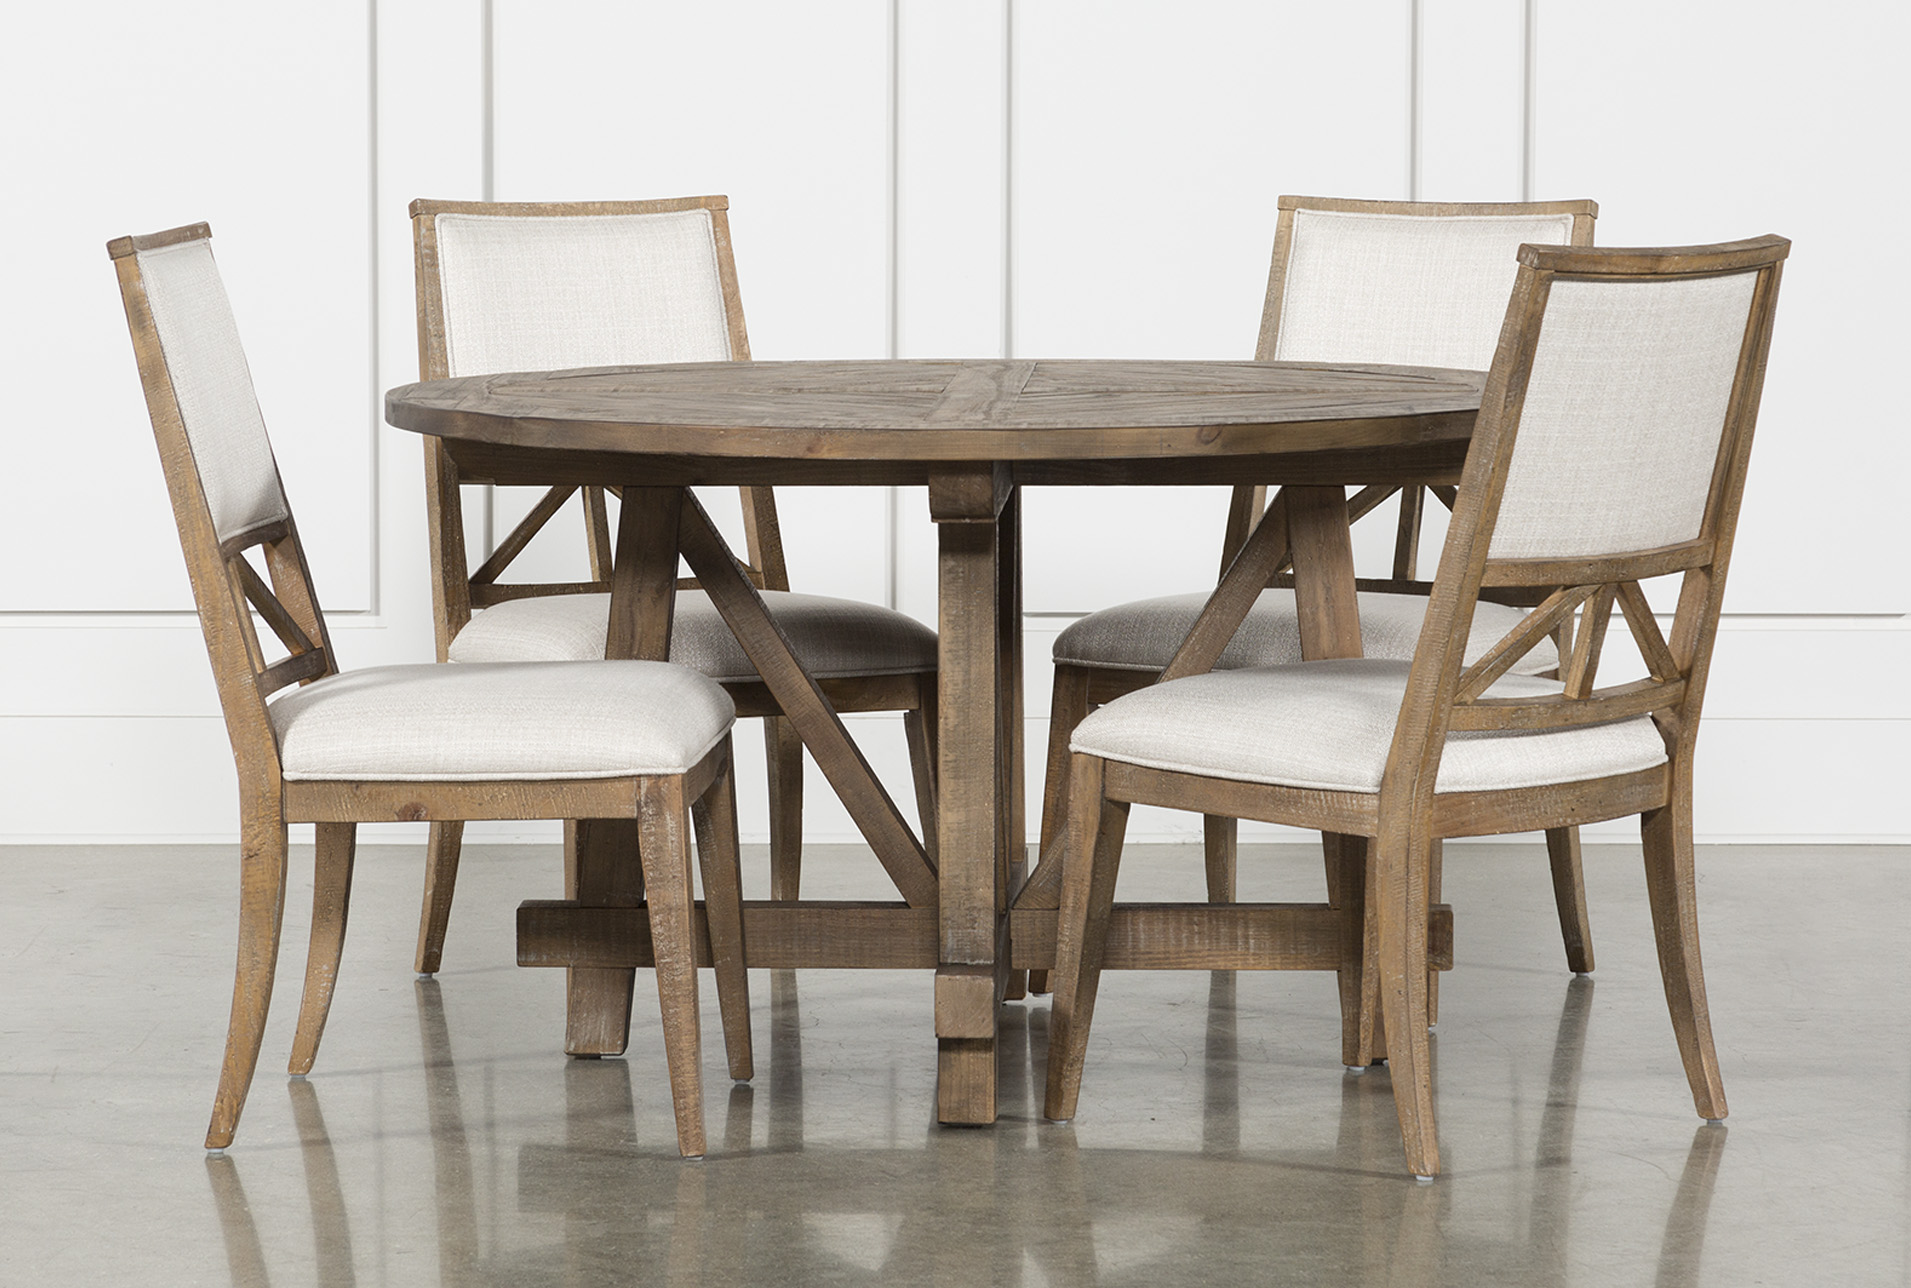 Craftsman 5 Piece Round Dining Set With Uph Side Chairs (Qty: 1) Has Been  Successfully Added To Your Cart.